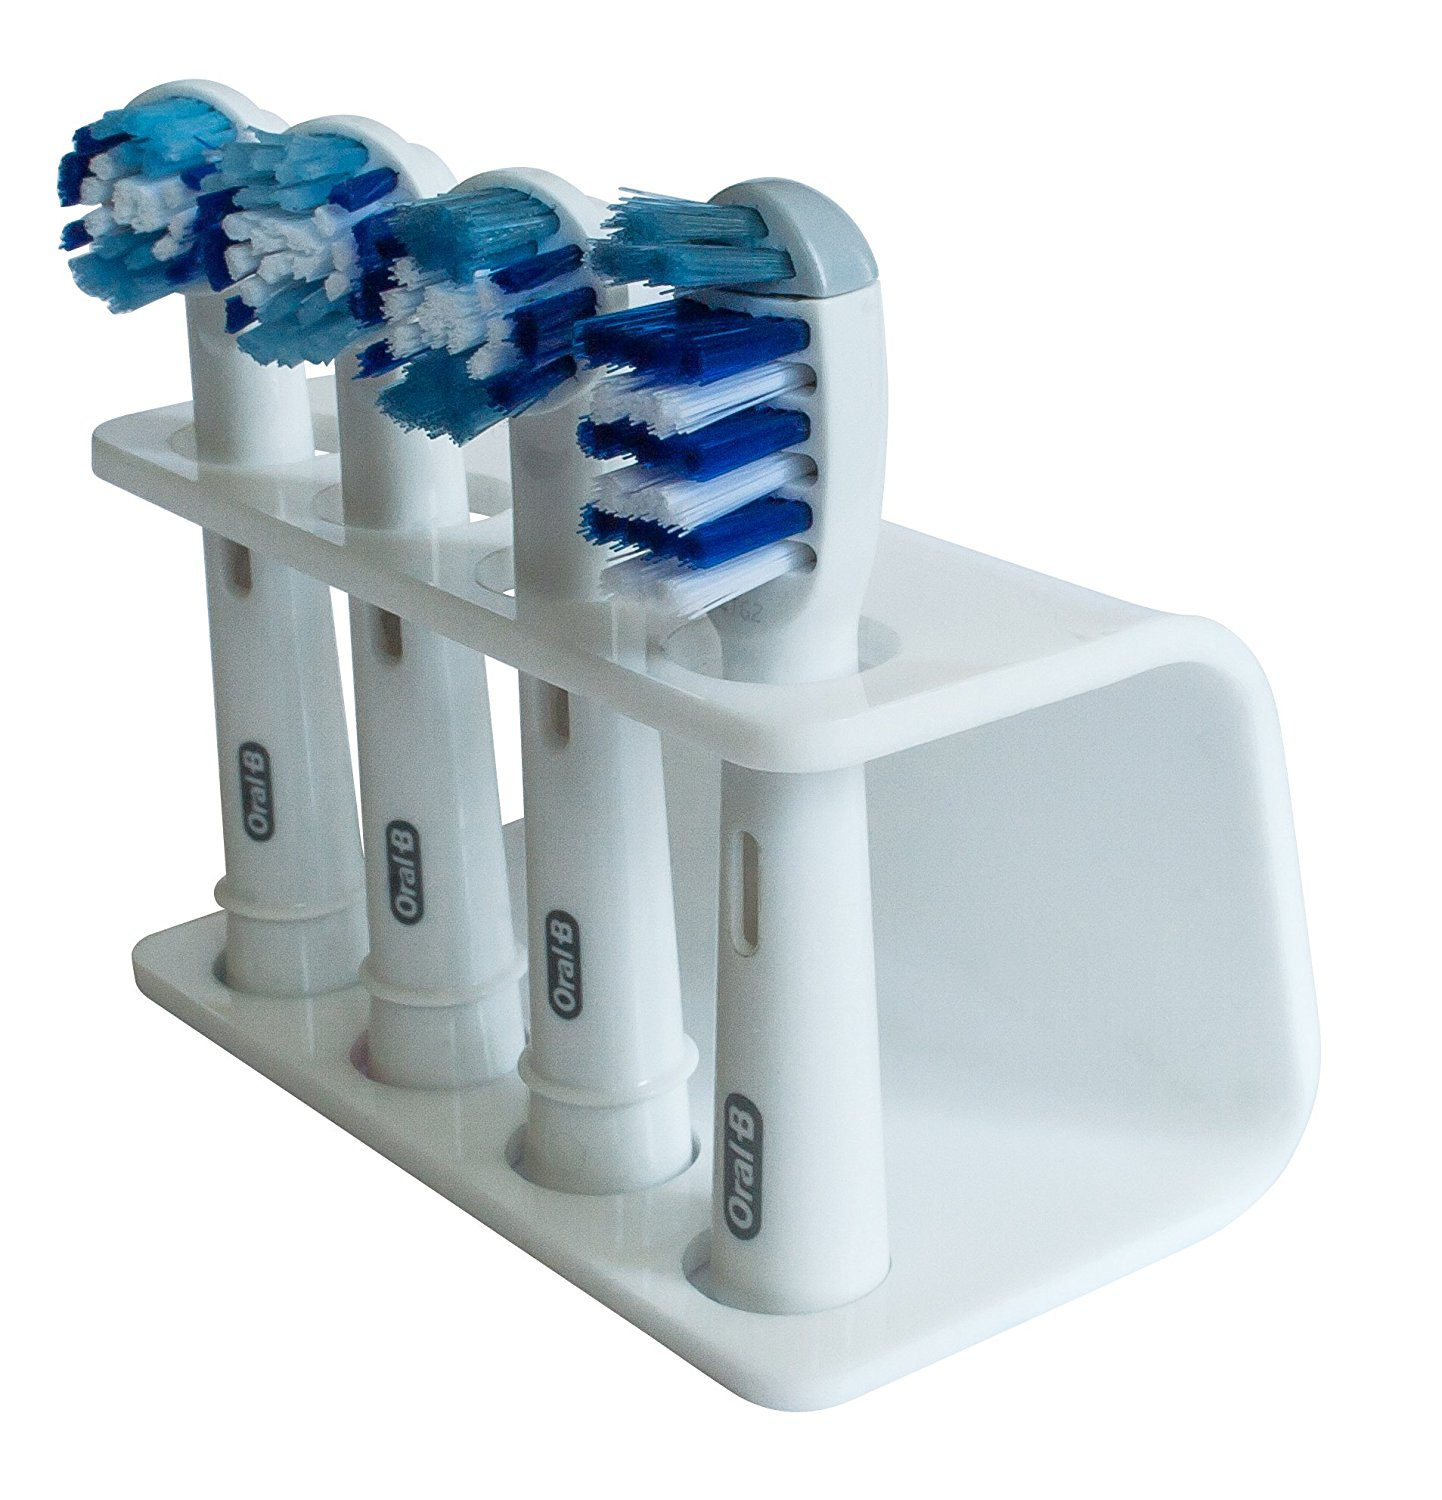 Seemii Electric Toothbrush Head Holder, 4 Heads, White, Fits Oral-b